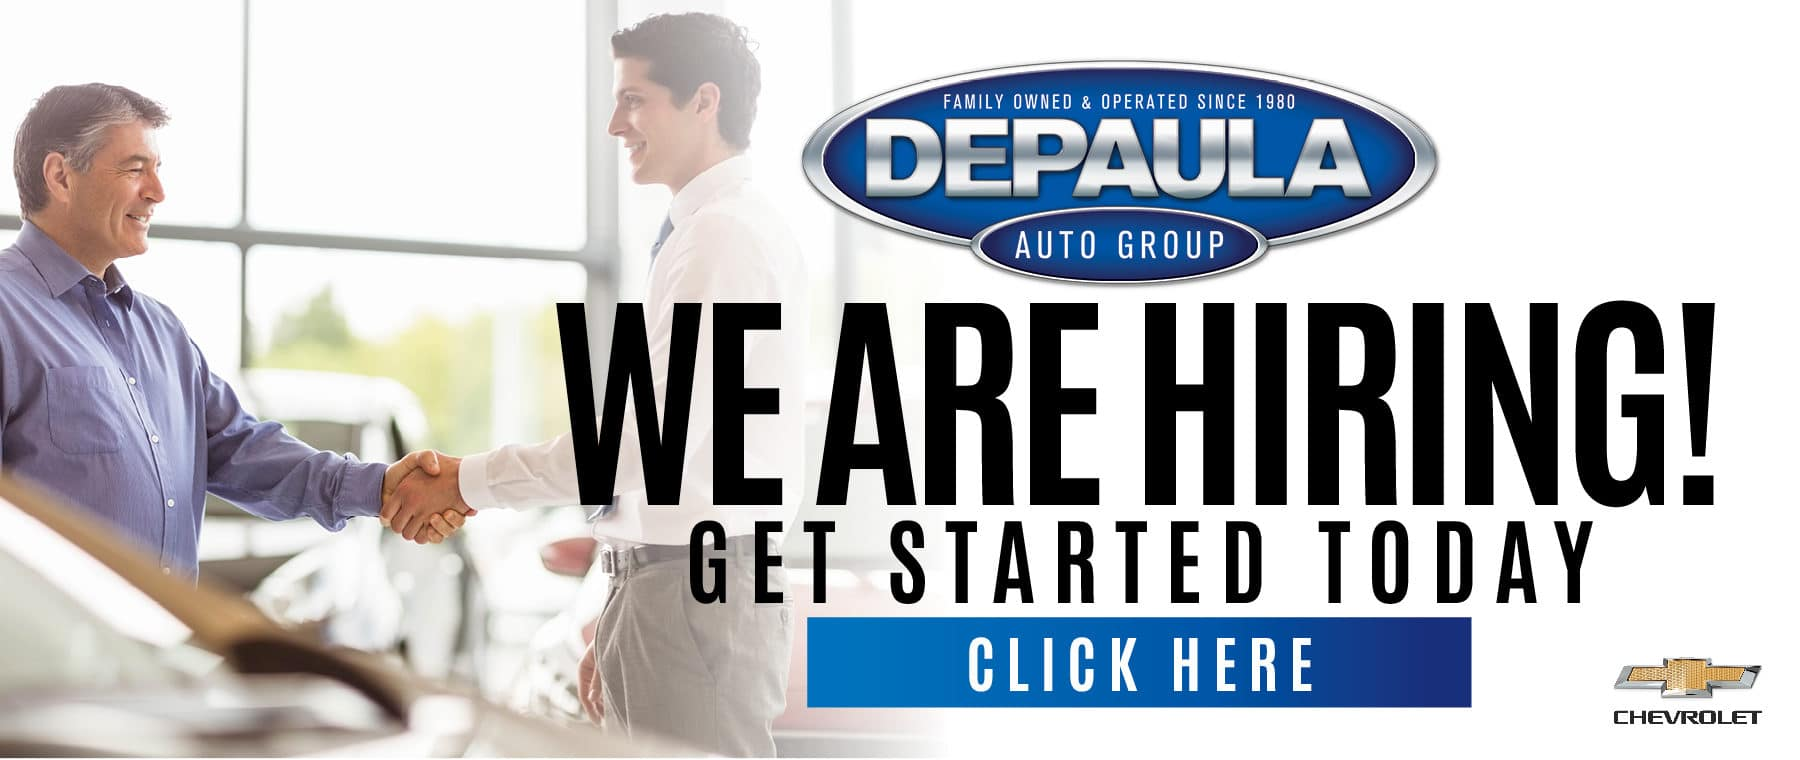 DEAG-1175 We Are Hiring Web Banner 2